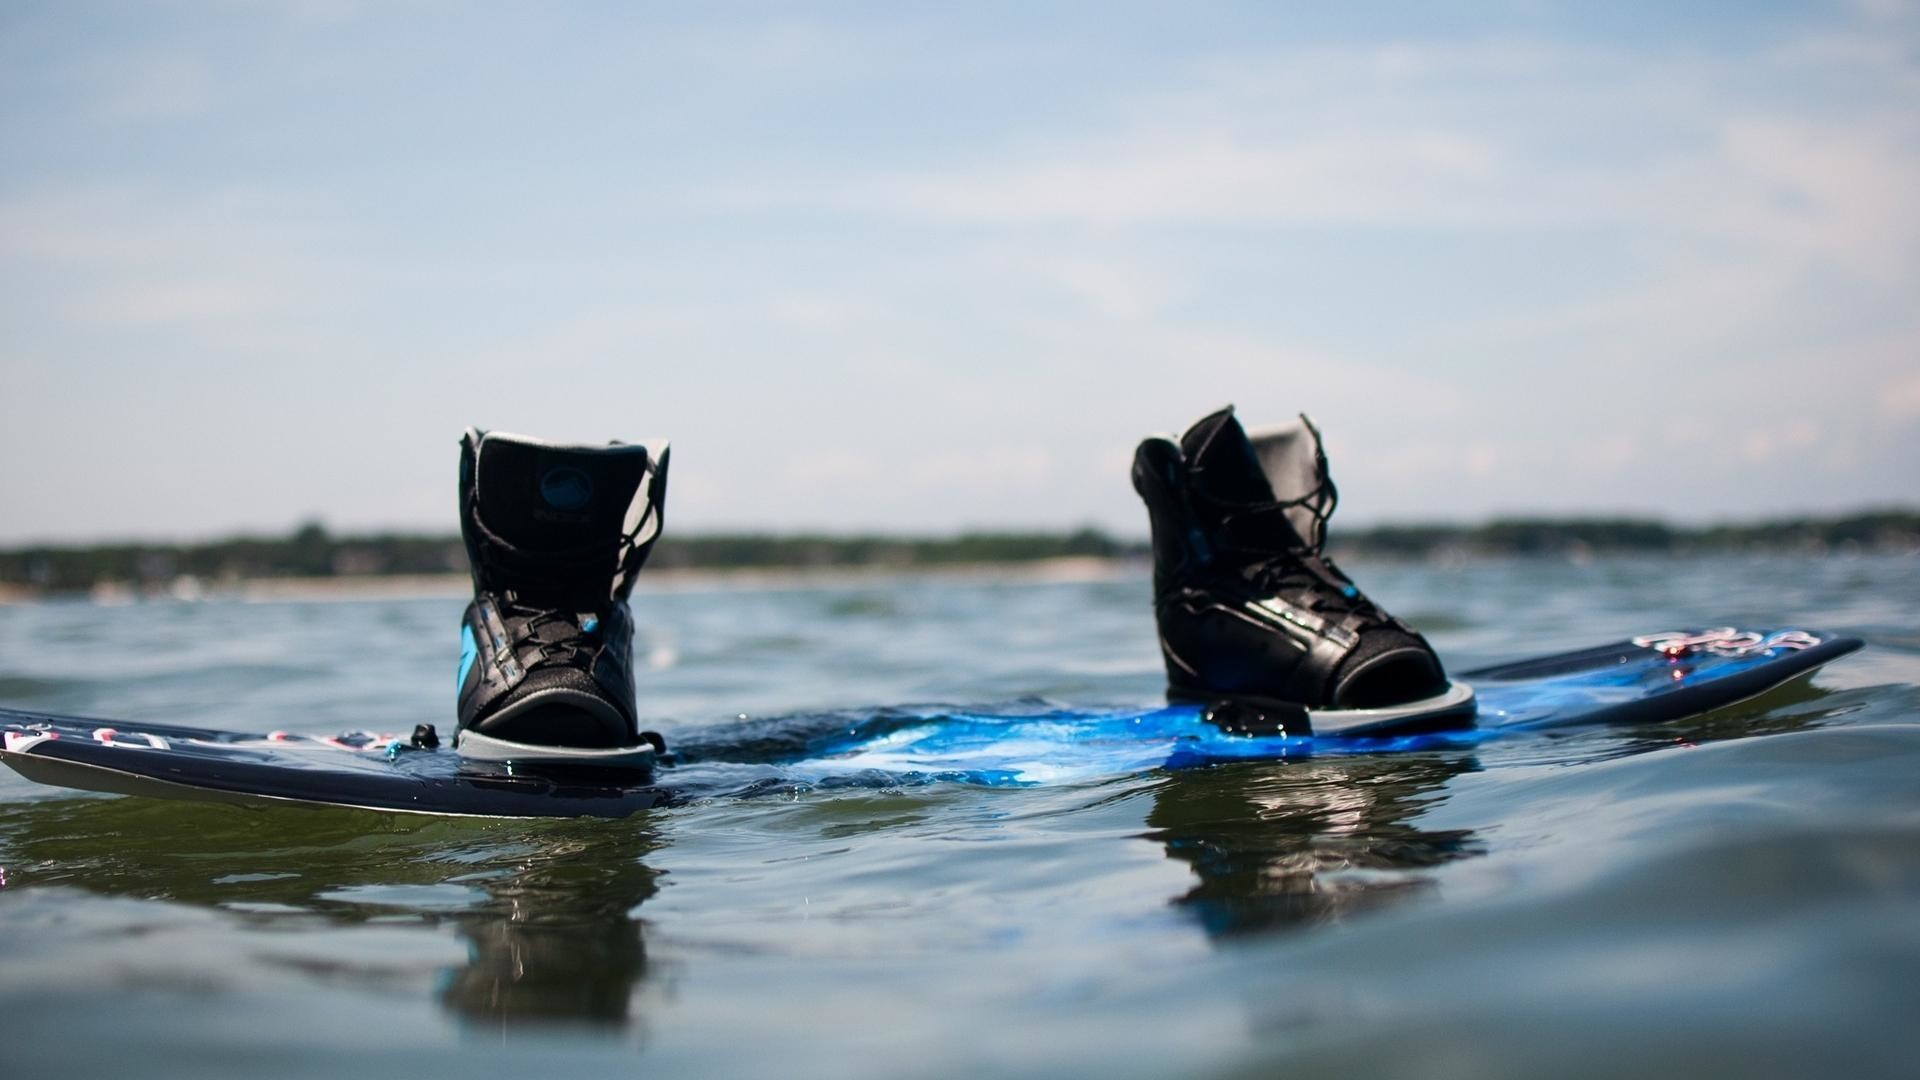 Water shoes reflections blue skies wakeboard sea wallpaper   (60309)